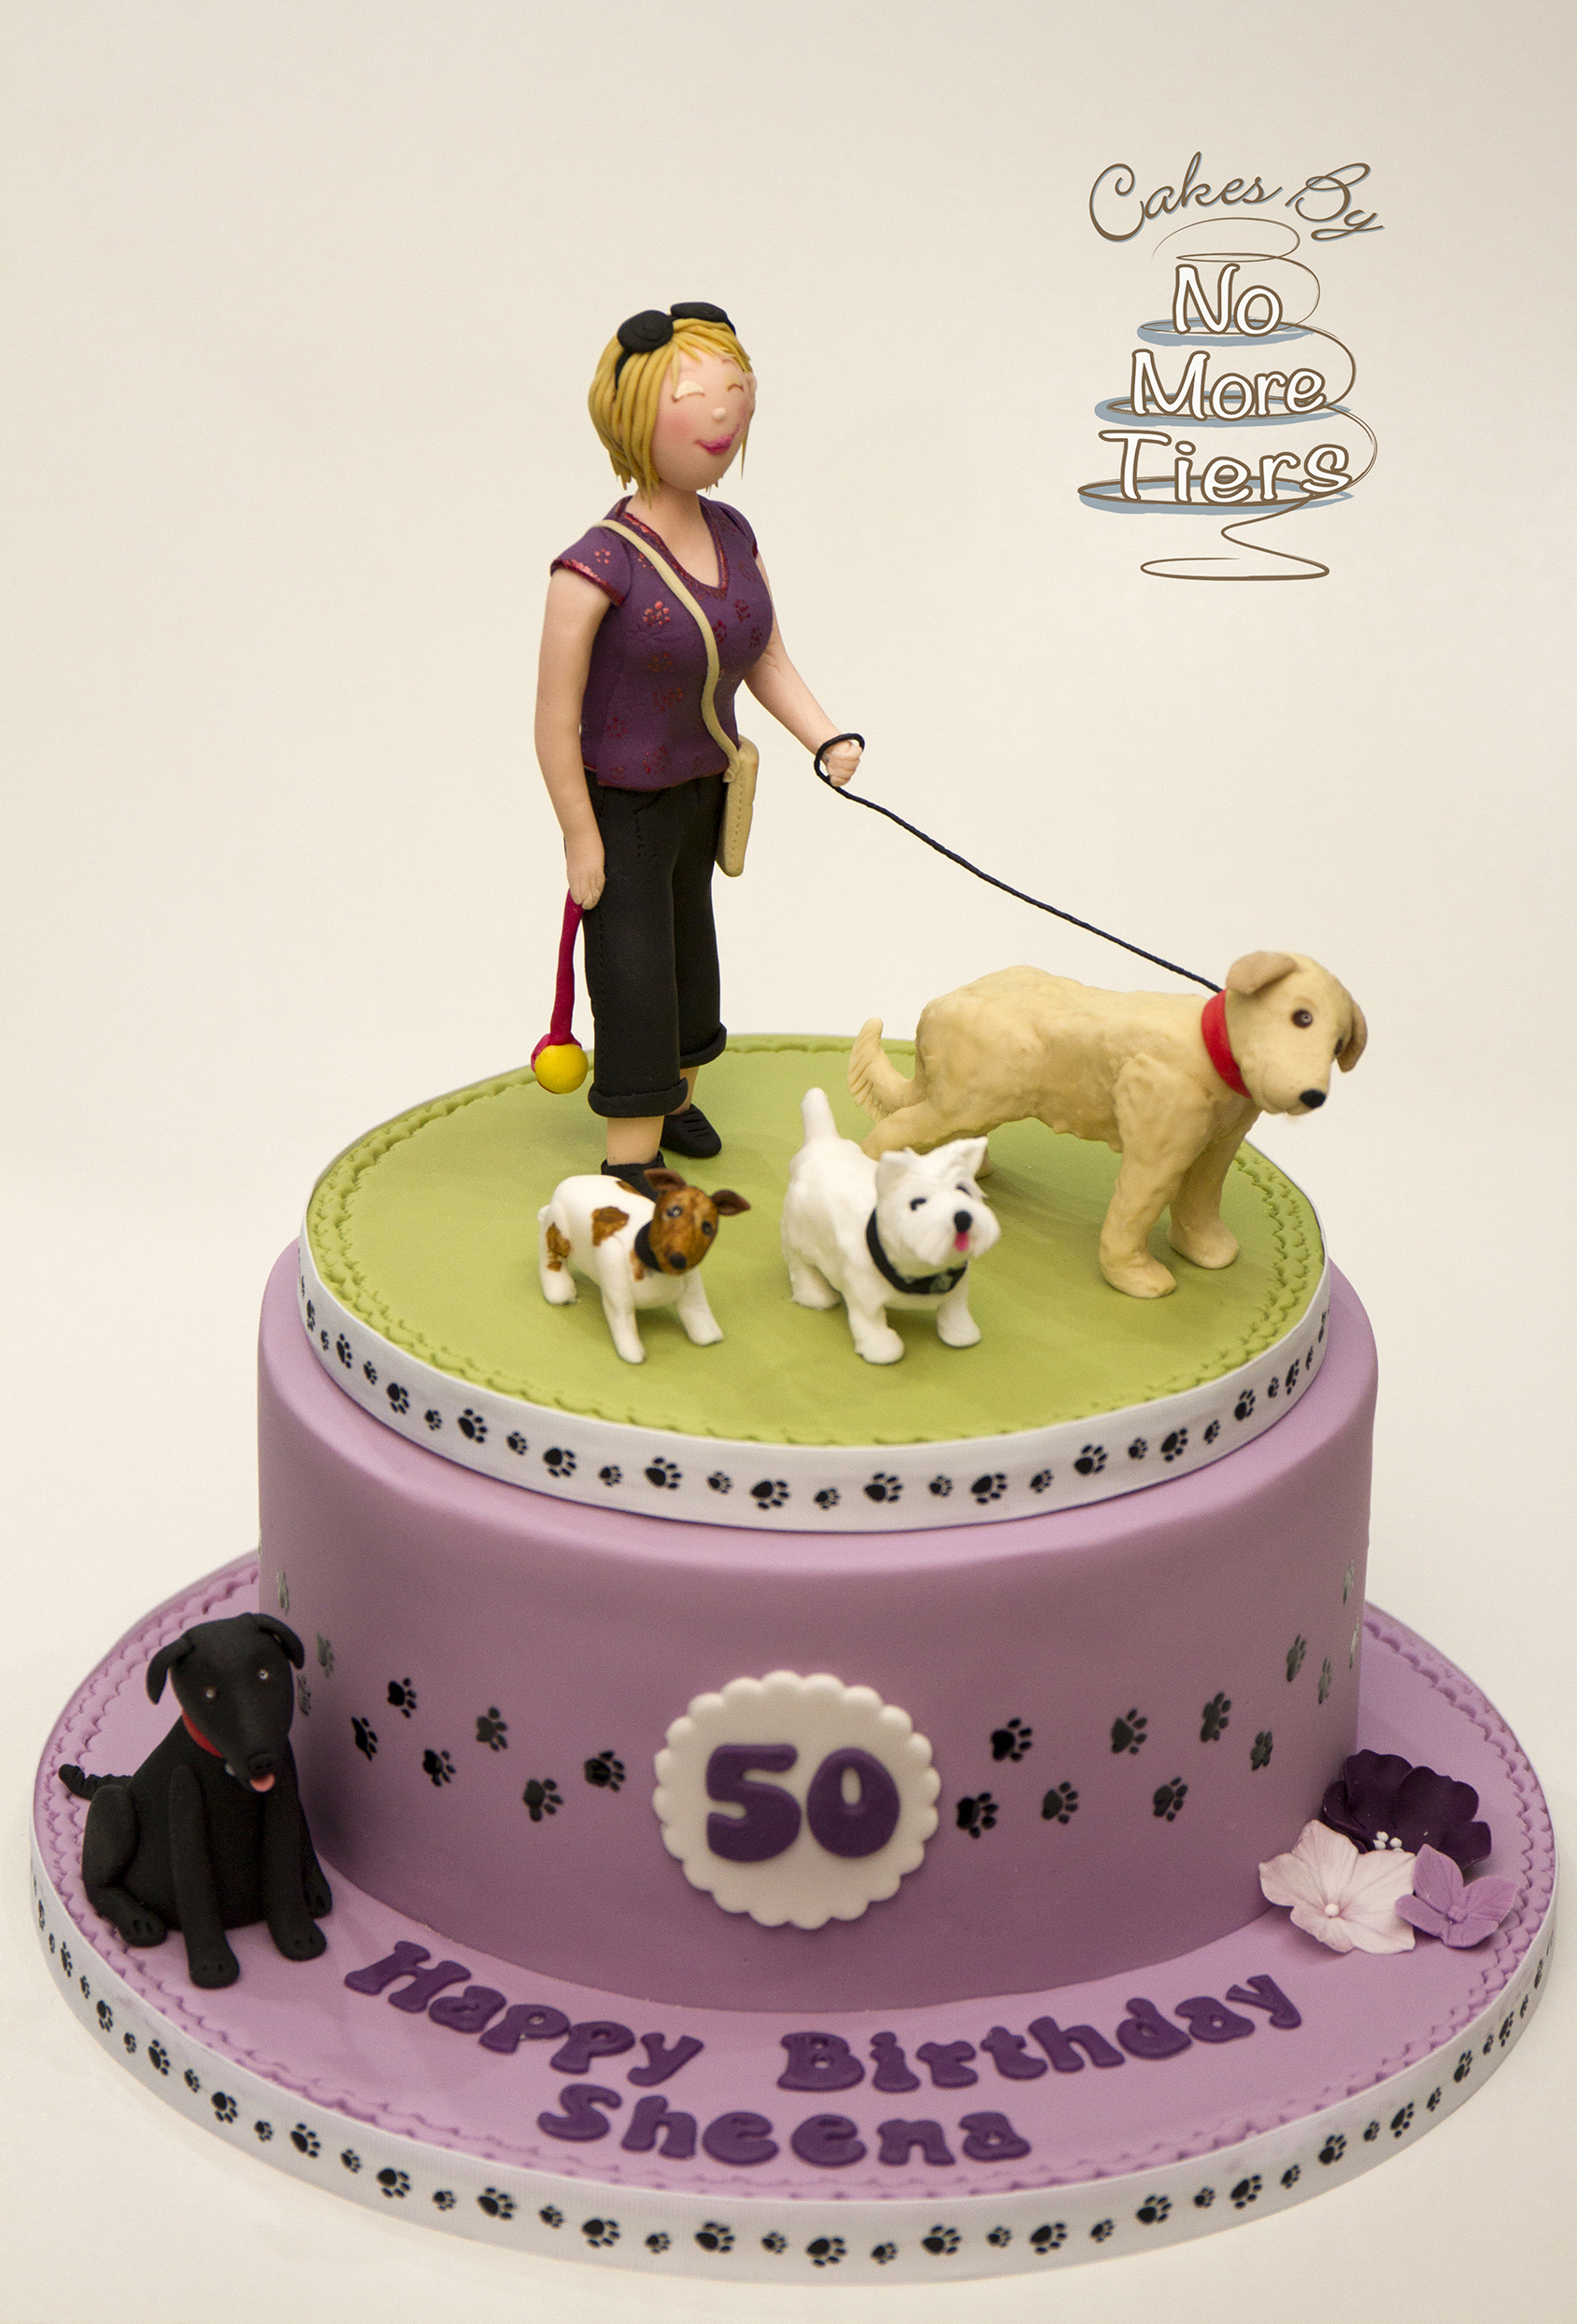 Dog walking birthday cake